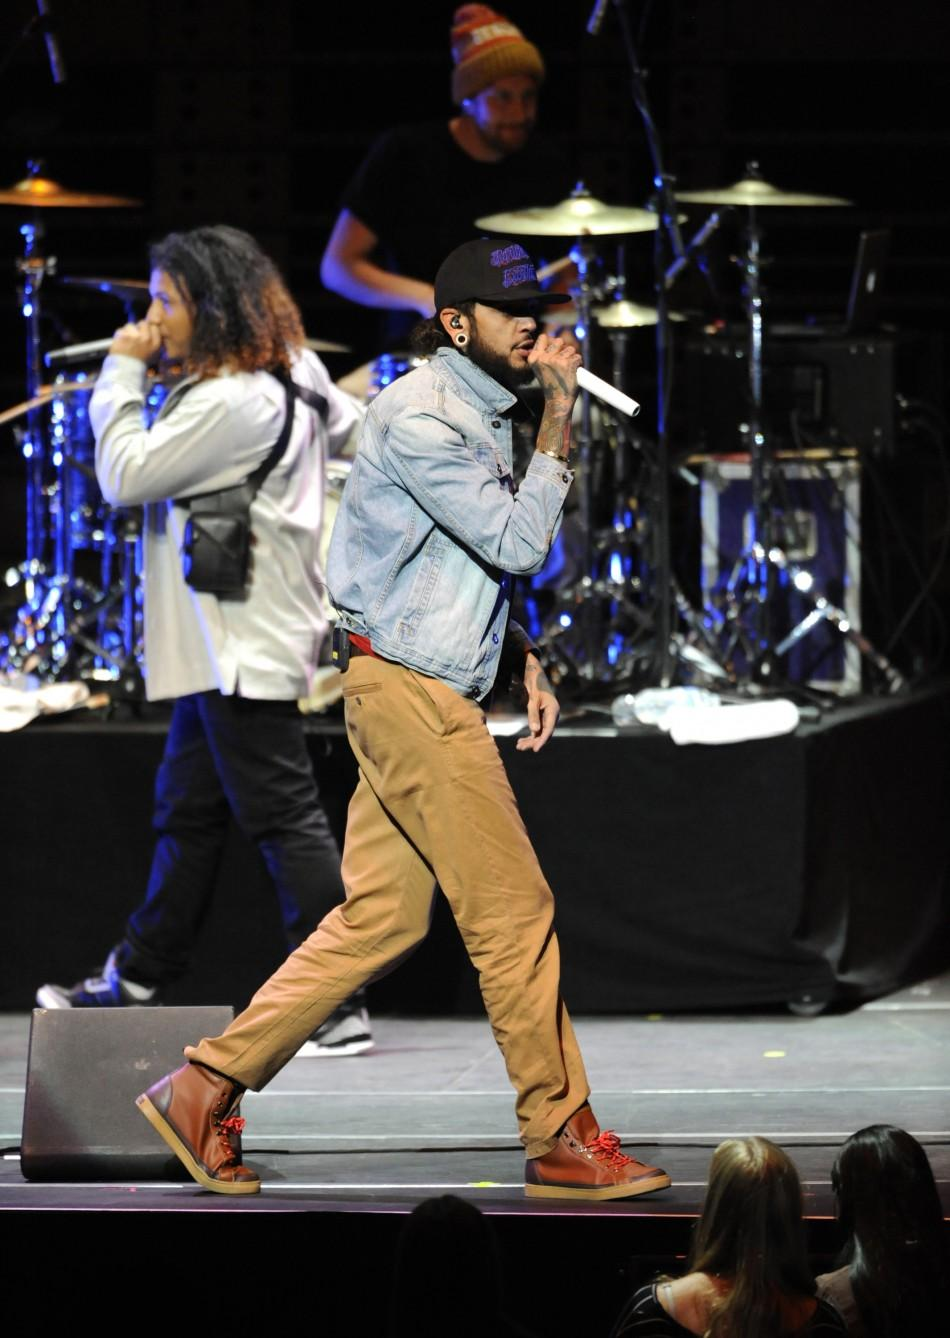 The band Gym Class Heroes performs at the 102.7 KIIS FM's Jingle Ball 2011 in Los Angeles